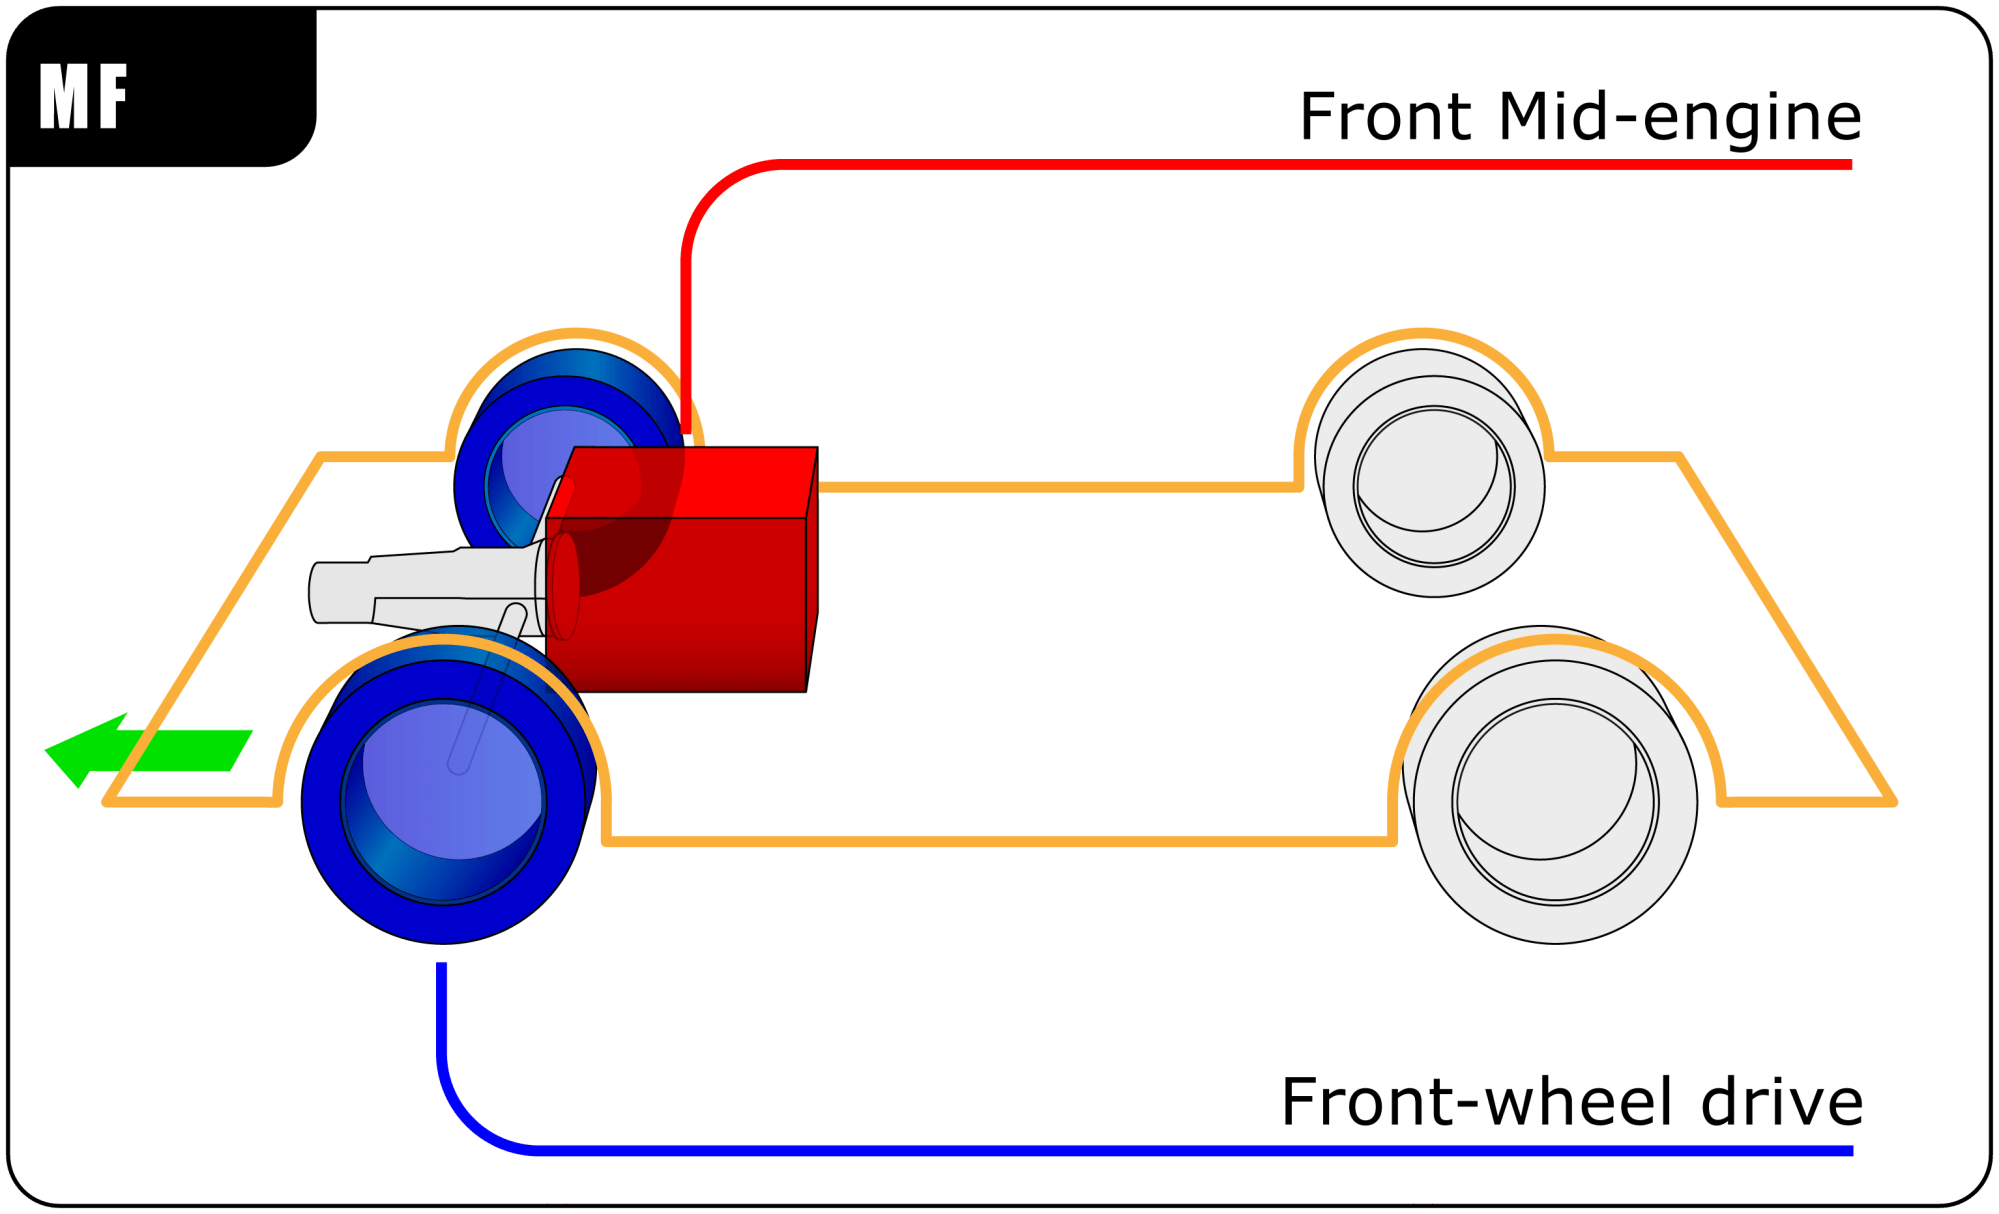 hight resolution of fwd engine diagram wiring diagram for you sable front wheel drive diagram conventional longitudinal fwd